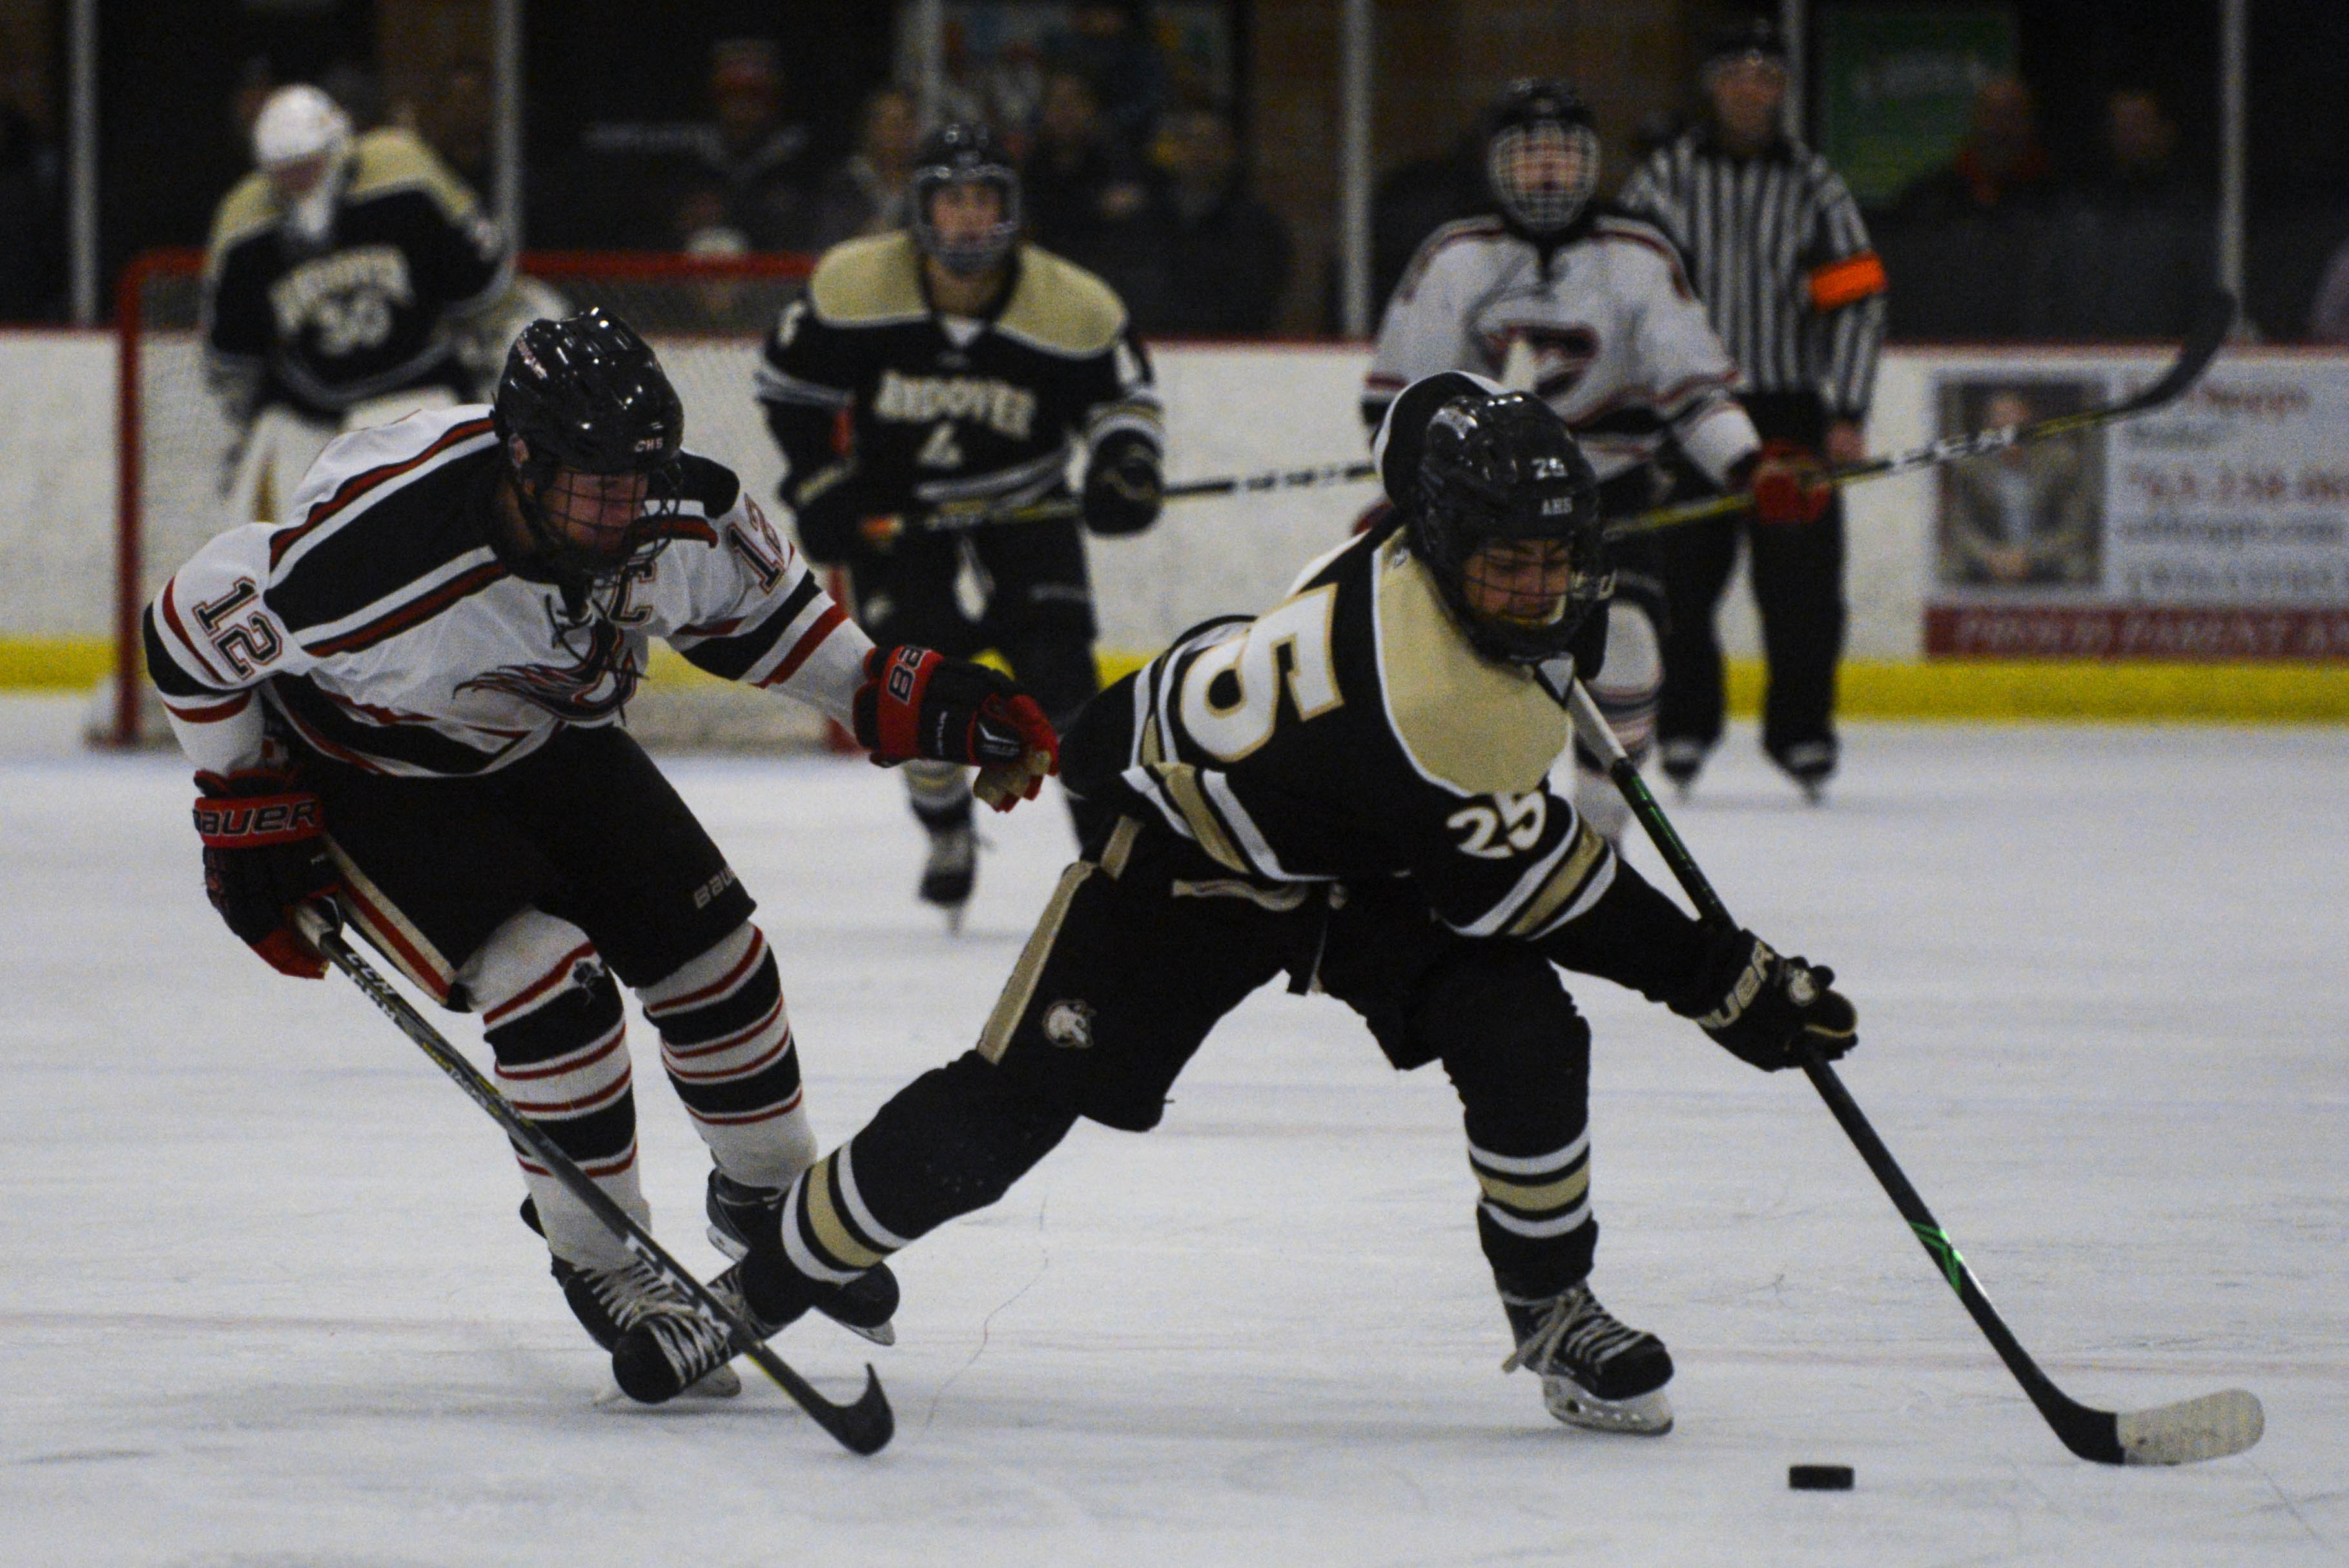 Andover forward Charlie Schoen (25) skates up the ice against Centennial defender Luke Arends (12). Schoen scored his 18th goal of the season in the 2-0 win. Photo by Carter Jones, SportsEngine